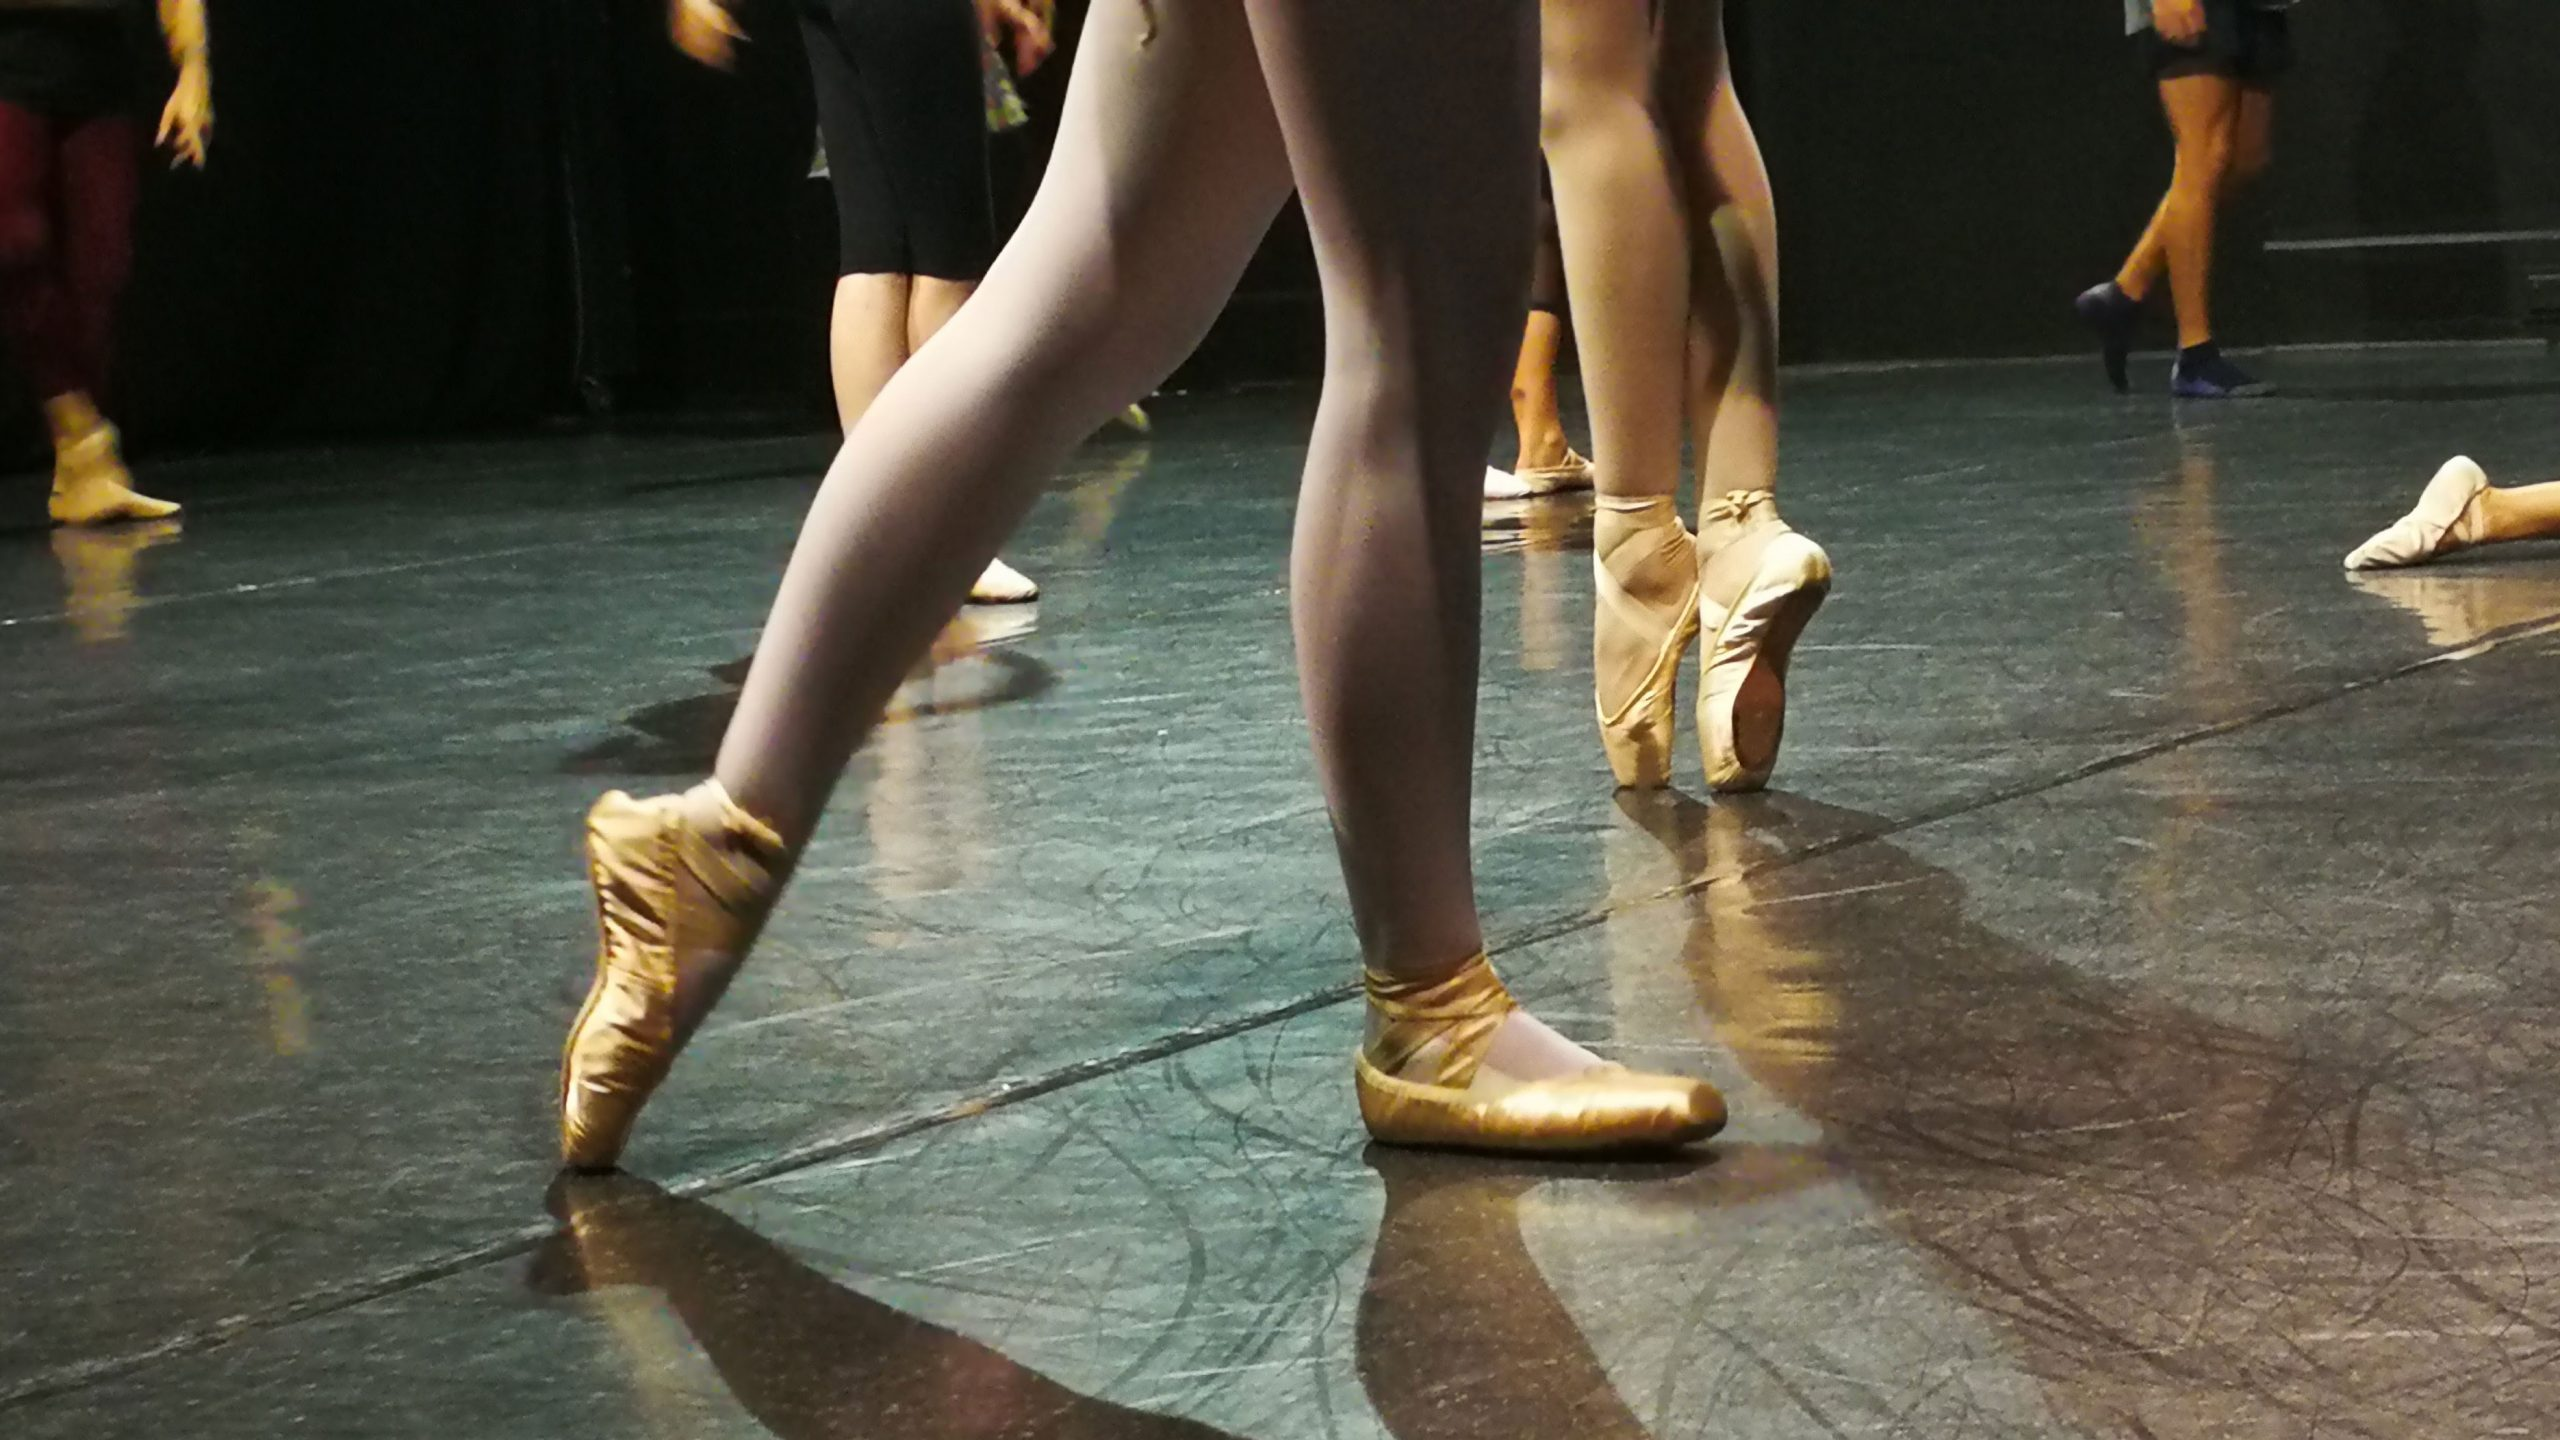 legs of dancers in pointe, flat, and demi-pointe shoes